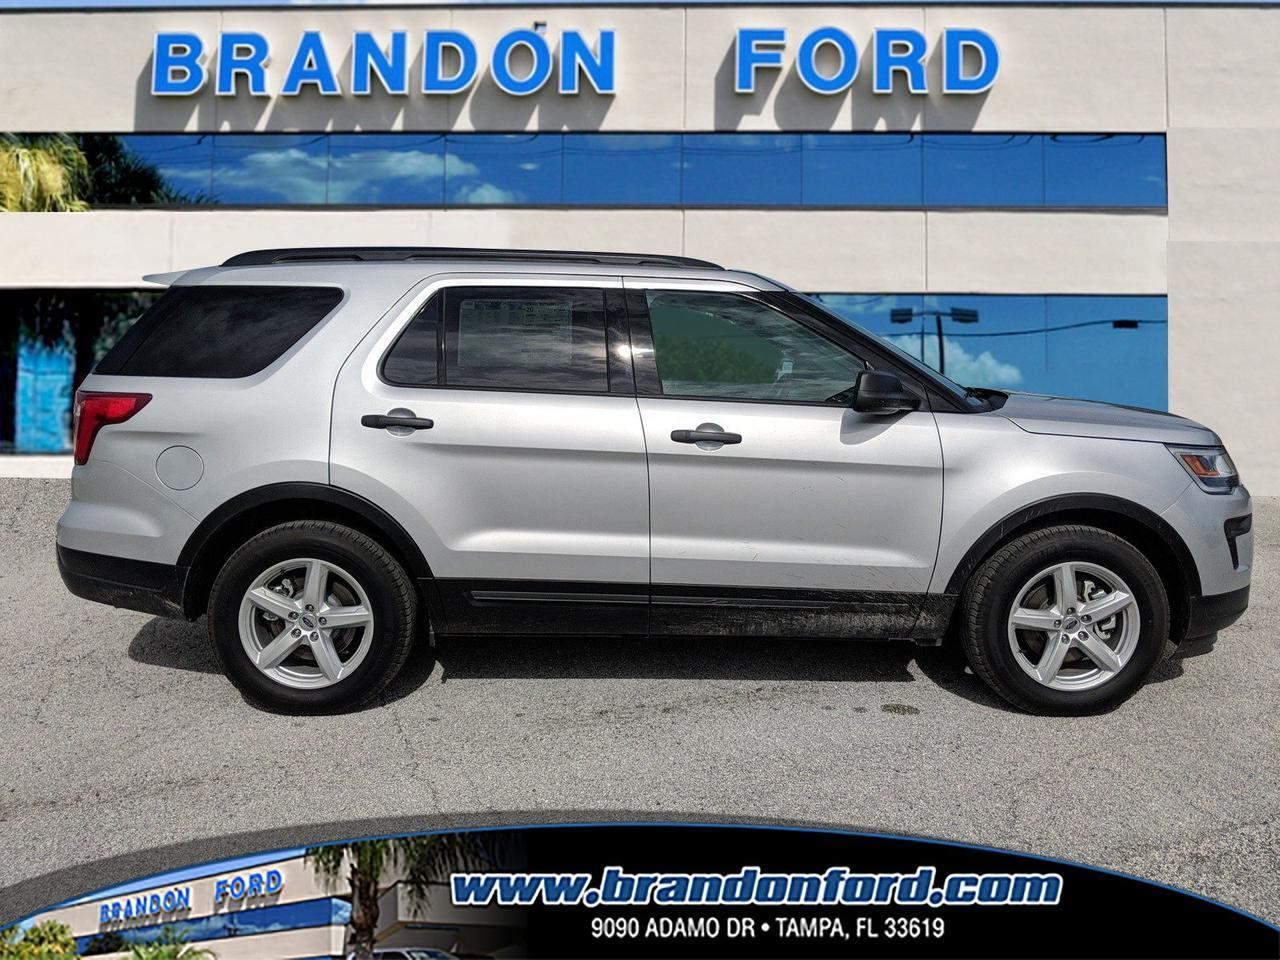 2018 Ford Escape Sel Tampa Fl 23153335 Explorer Mercury Mountaineer Electrical Troubleshooting Manual